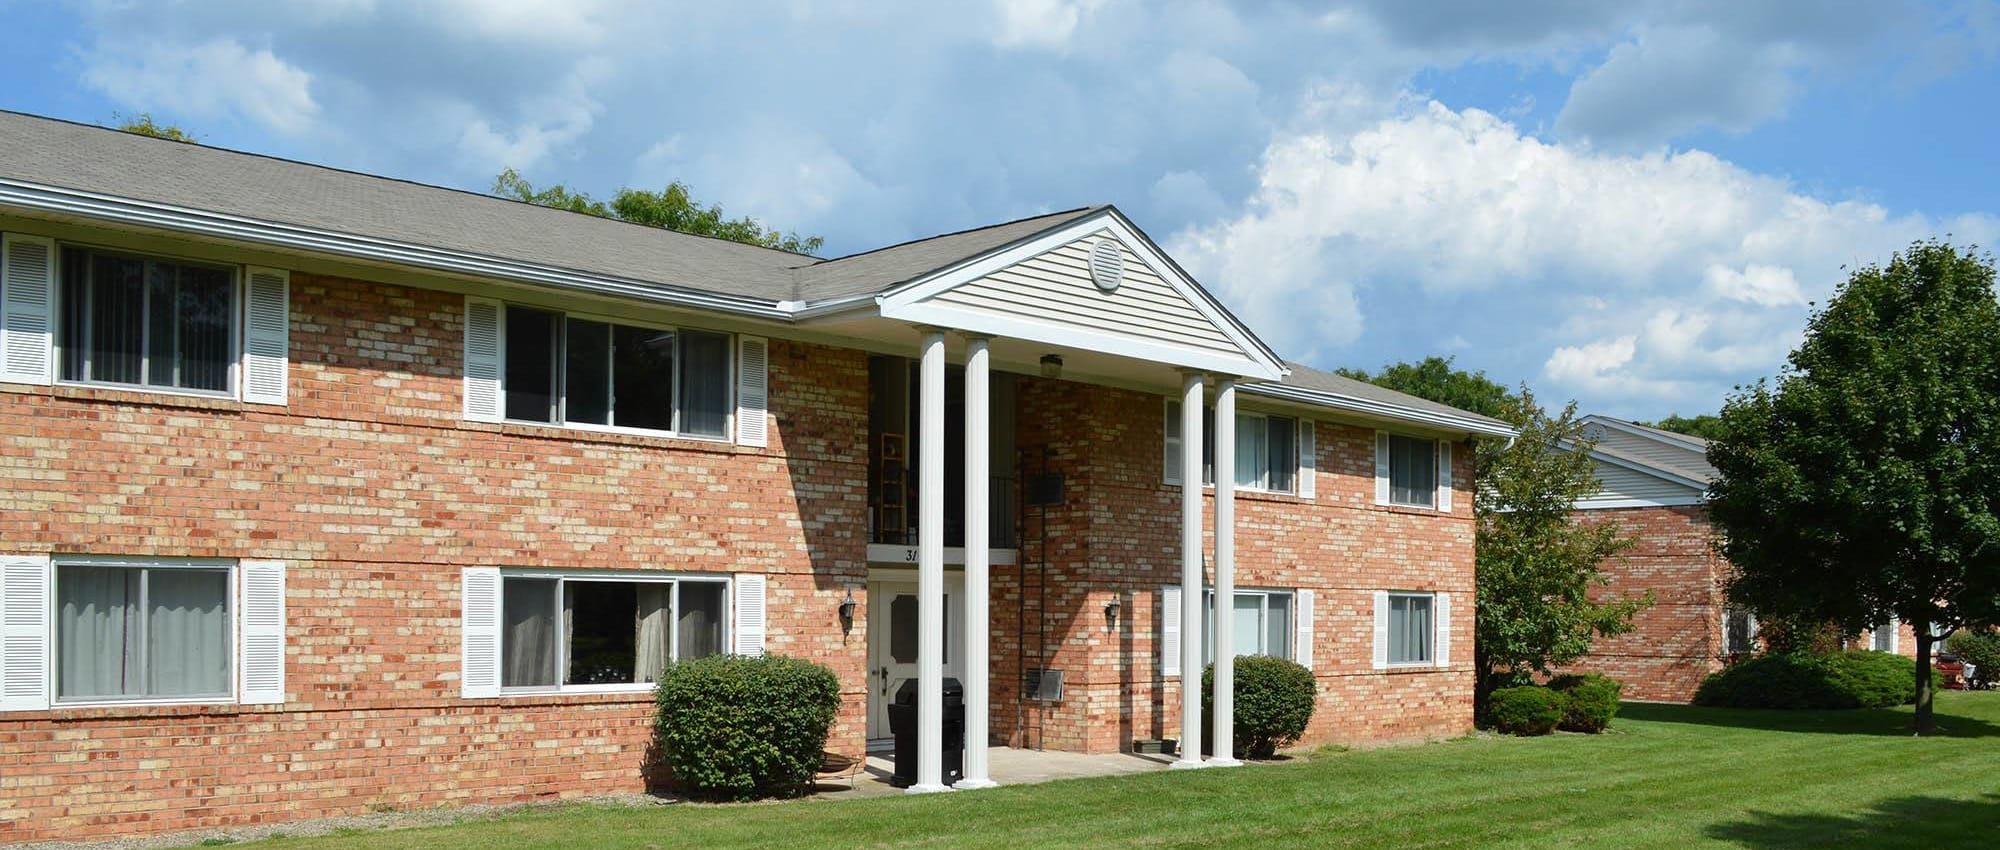 Apartments at Henrietta Highlands in Henrietta, New York